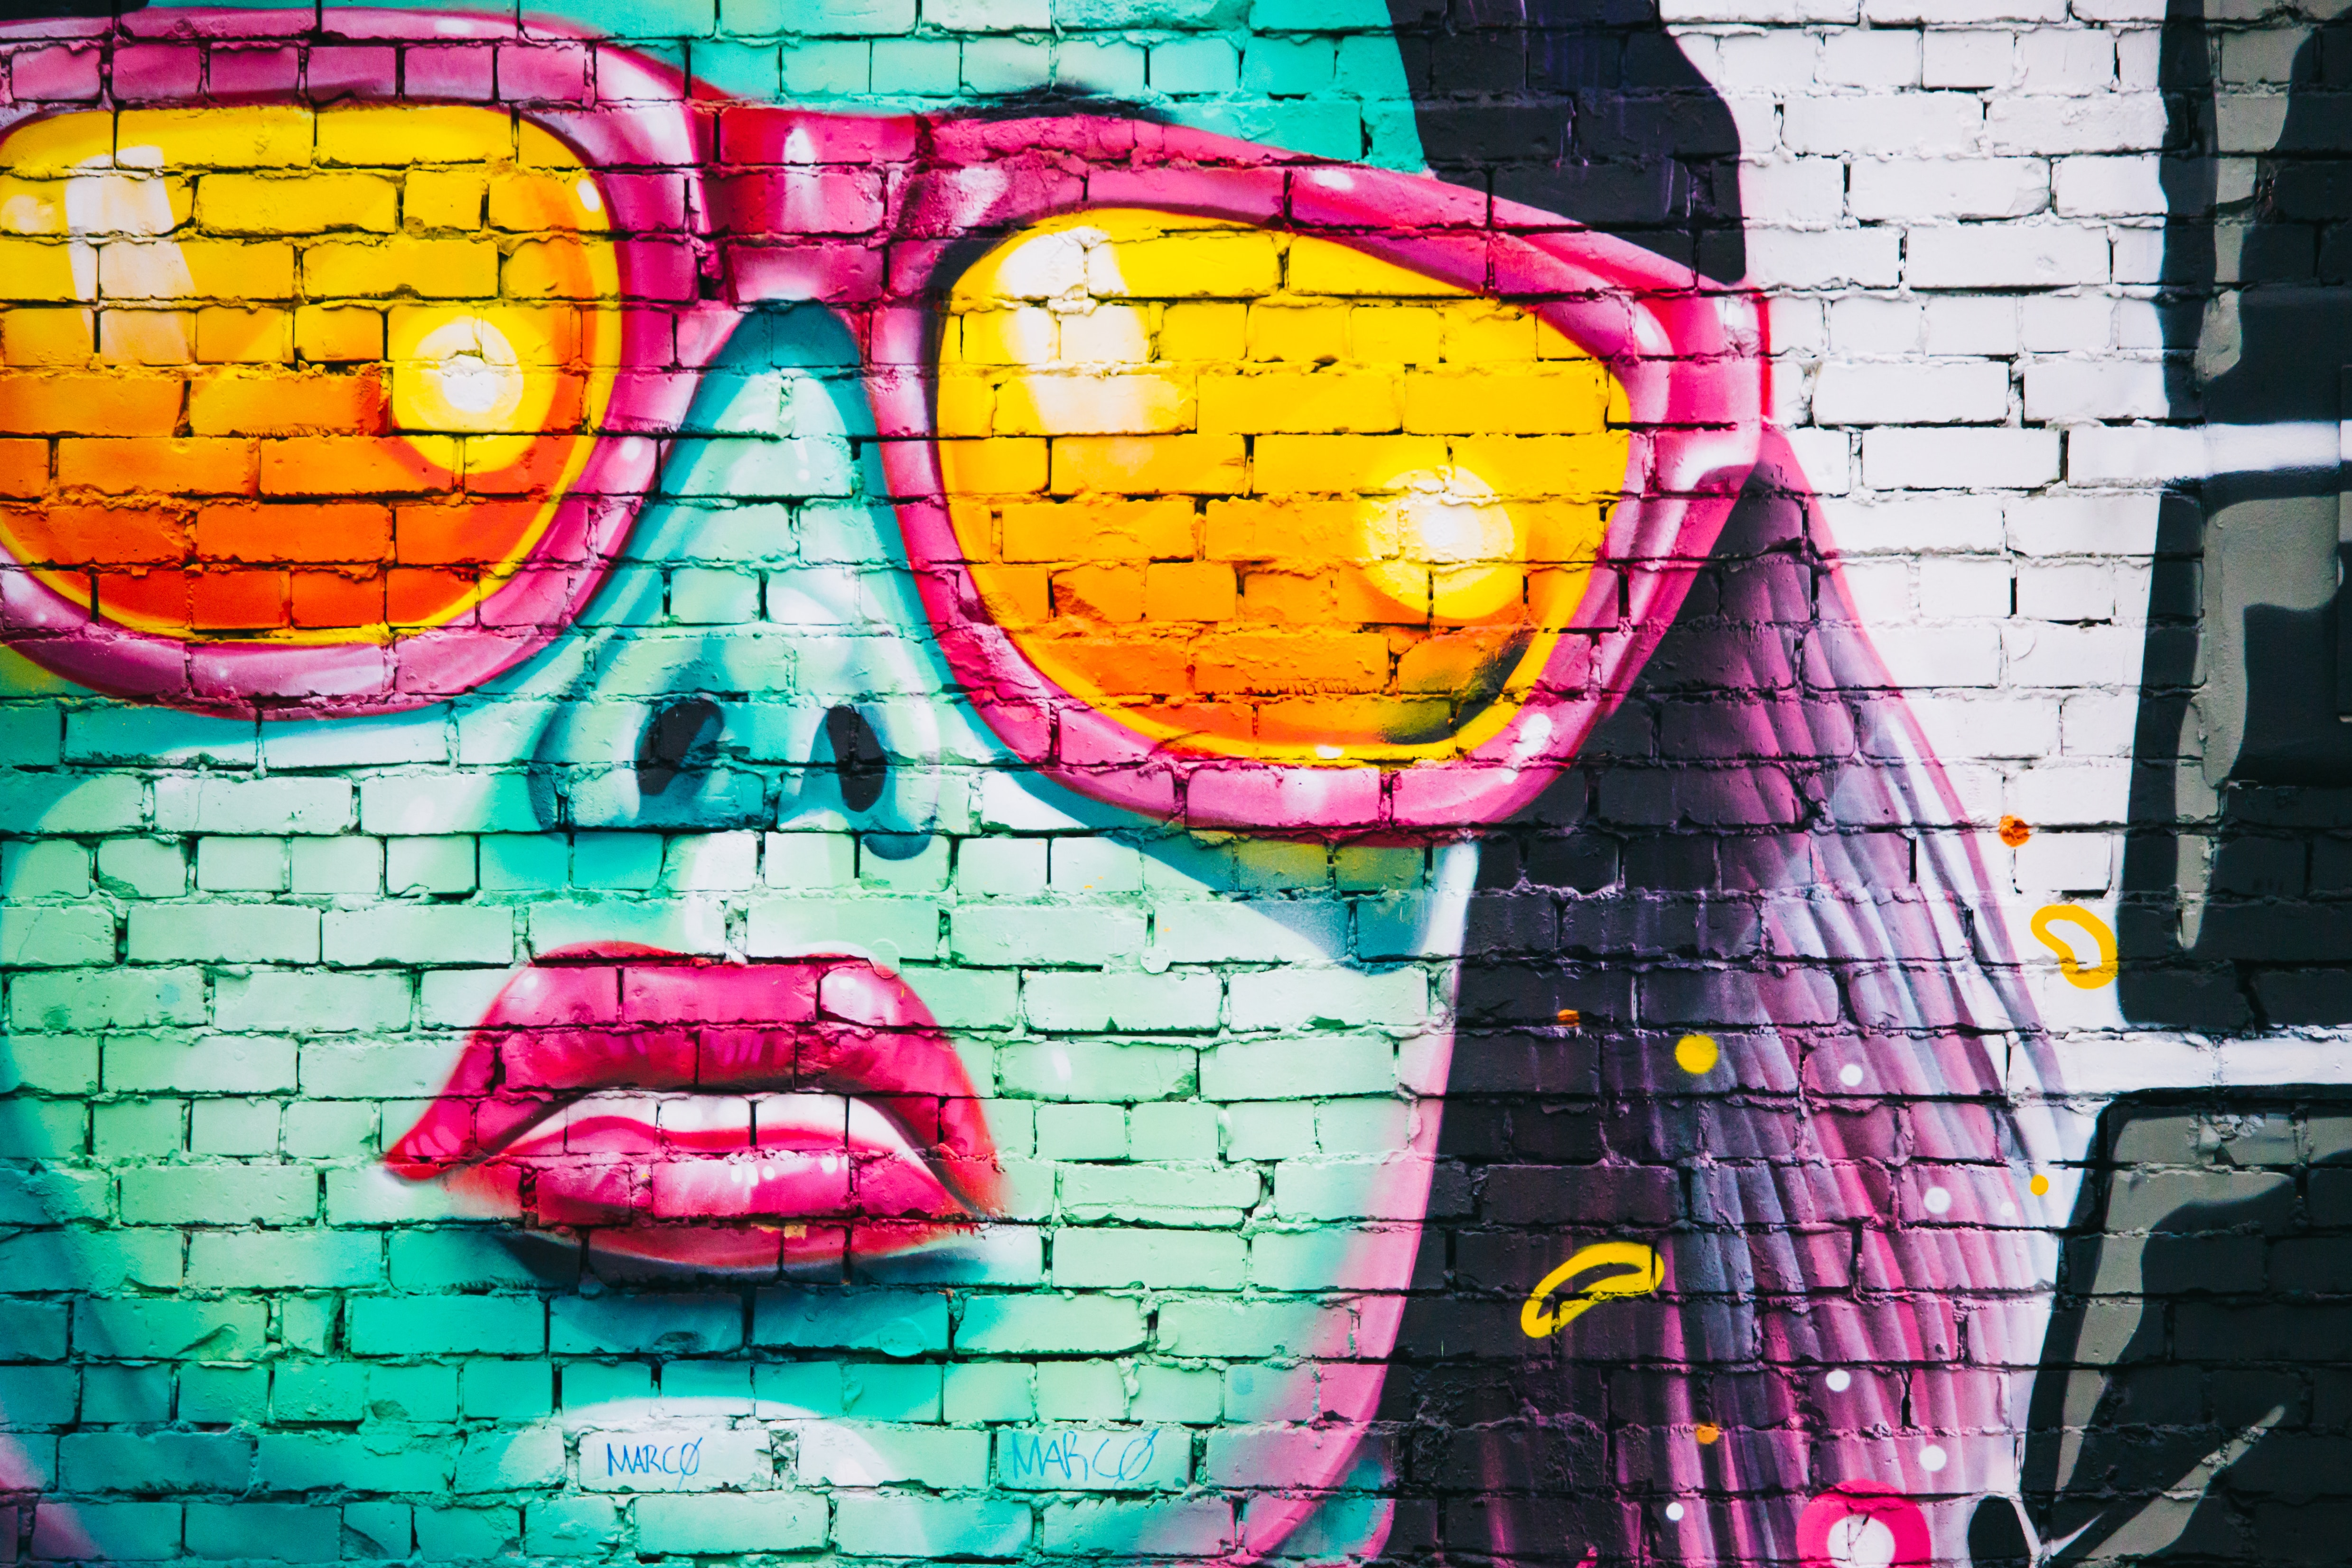 A graffiti art of a woman in pink sunglasses. Feels post-modern and ties in with the 'Punk' theme of this pen